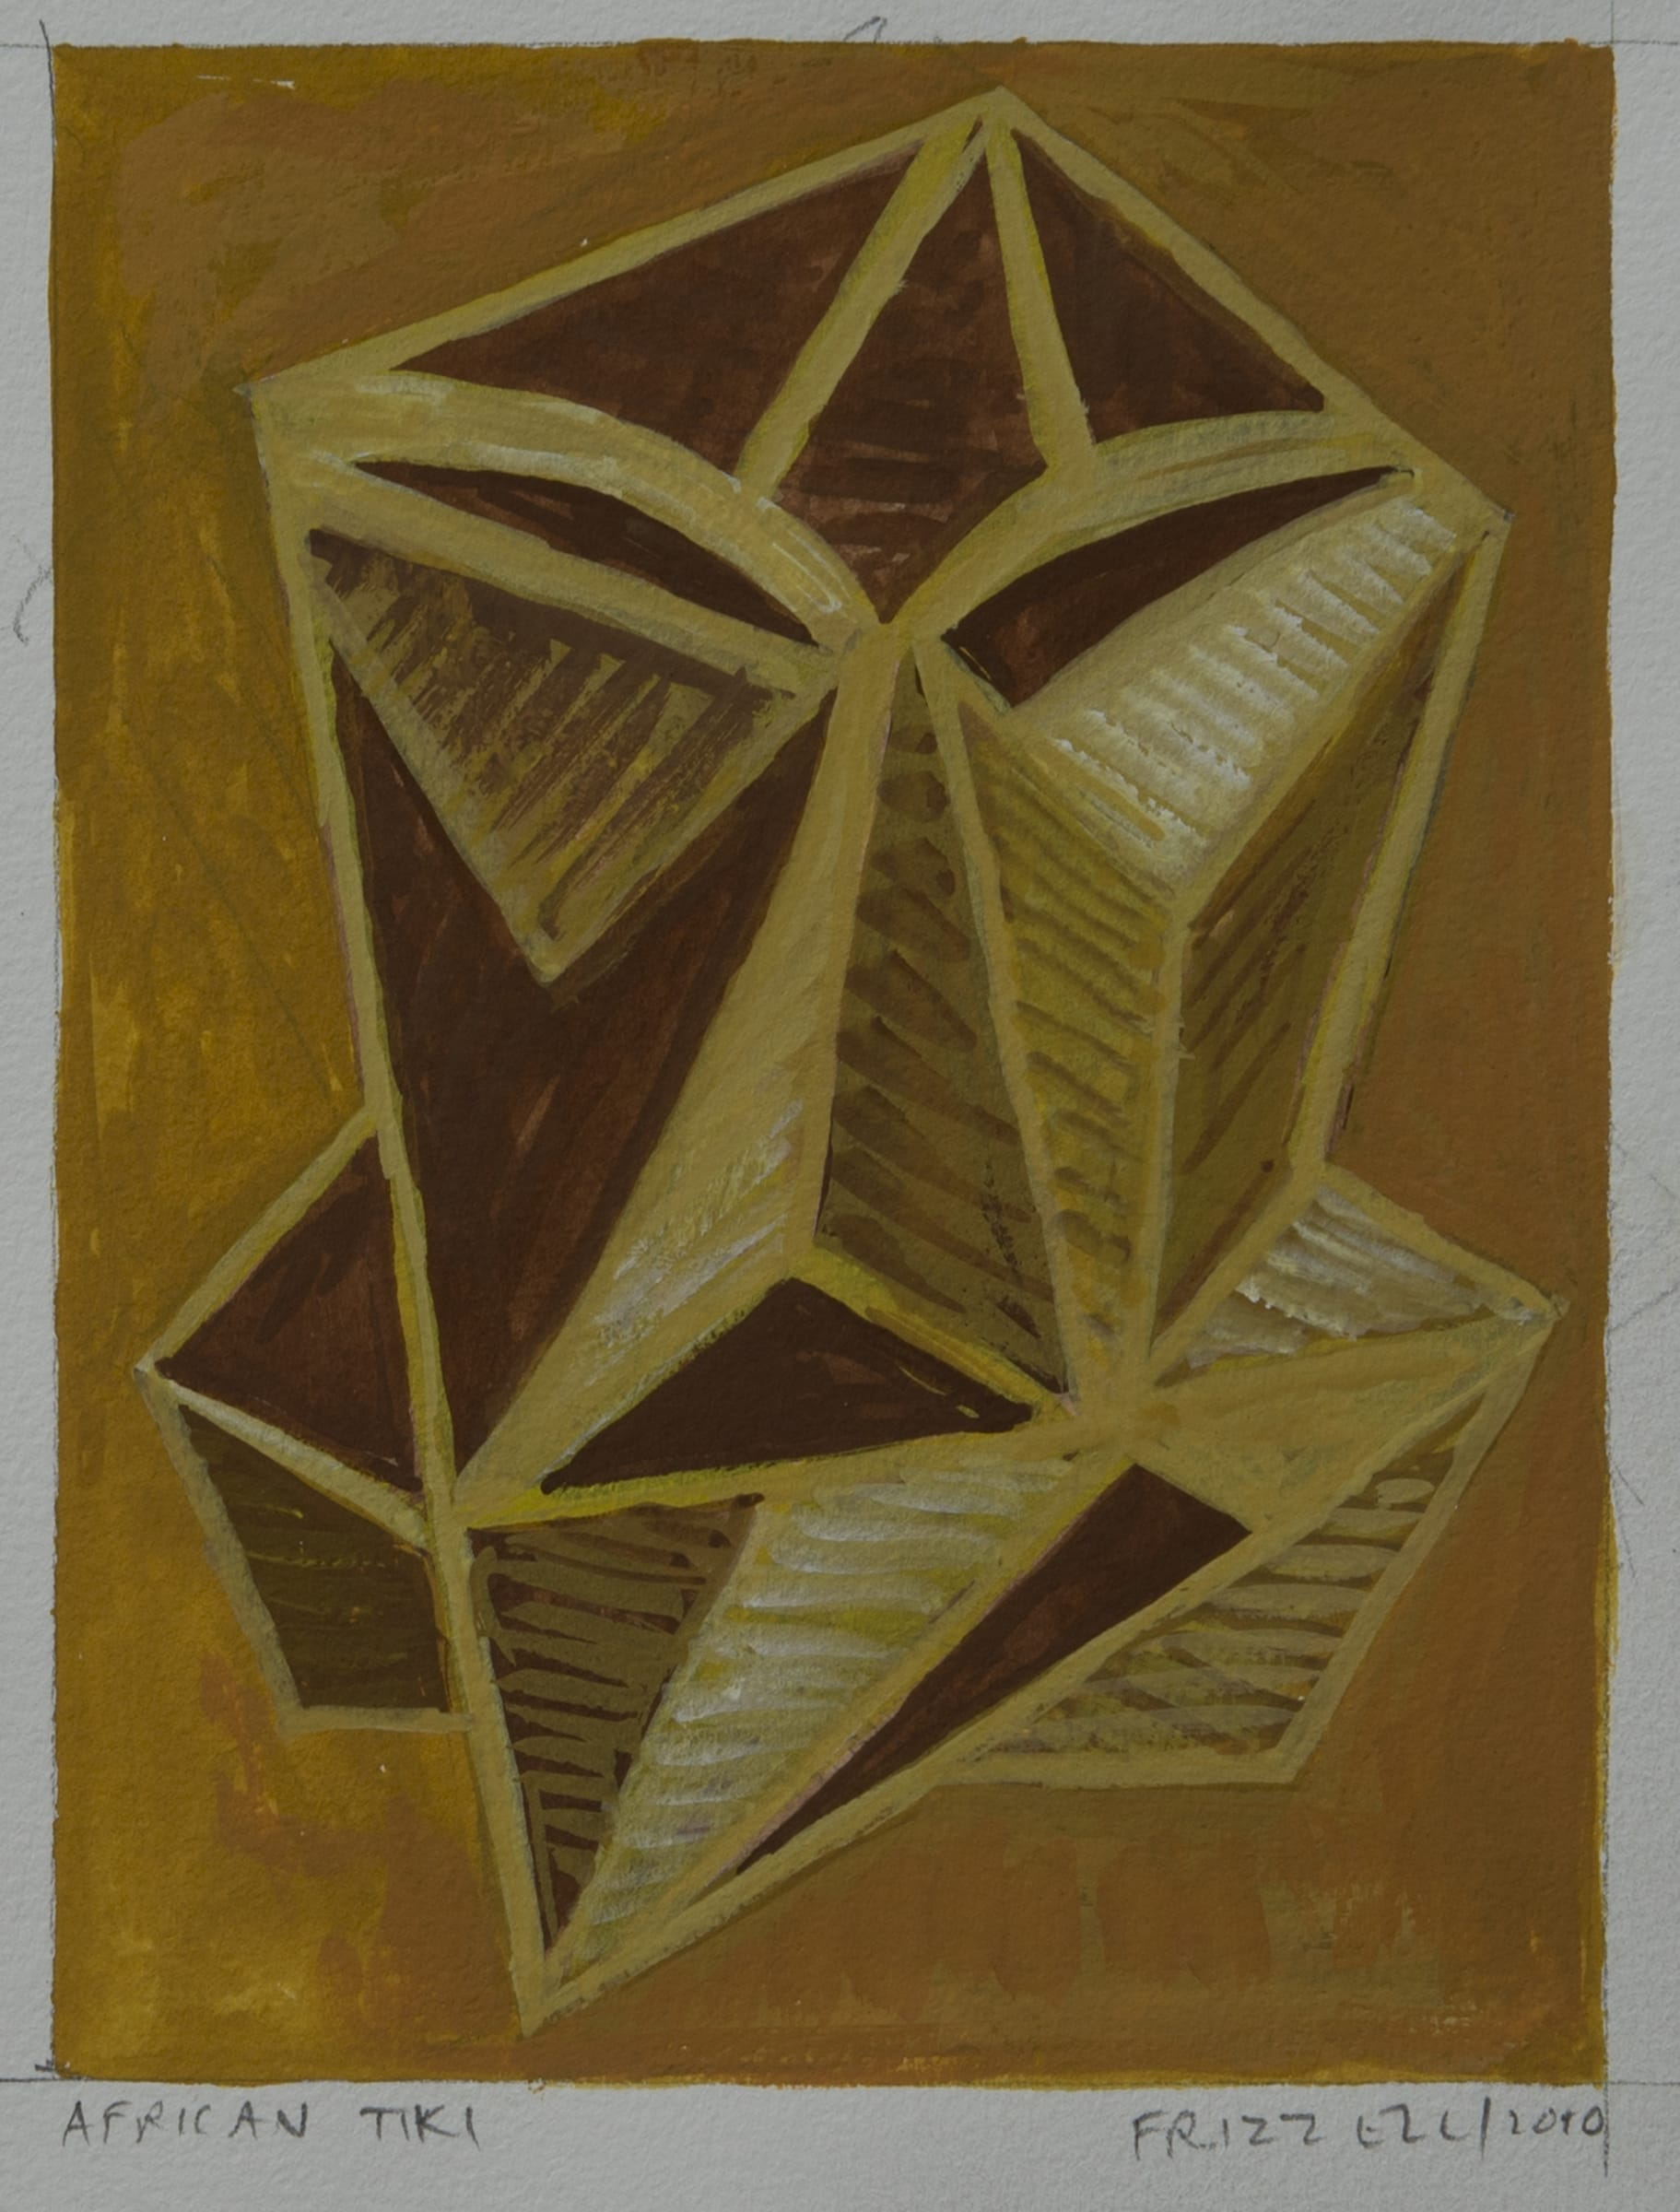 """<span class=""""link fancybox-details-link""""><a href=""""/exhibitions/88/works/artworks5844/"""">View Detail Page</a></span><div class=""""signed_and_dated"""">Titled, signed and dated below</div> <div class=""""medium"""">Gouache and pencil on paper</div> <div class=""""dimensions"""">6.5 x 4.9 in<br /> 16.5 x 12.5cm<br /> 47 x 35.5cm (framed)</div>"""